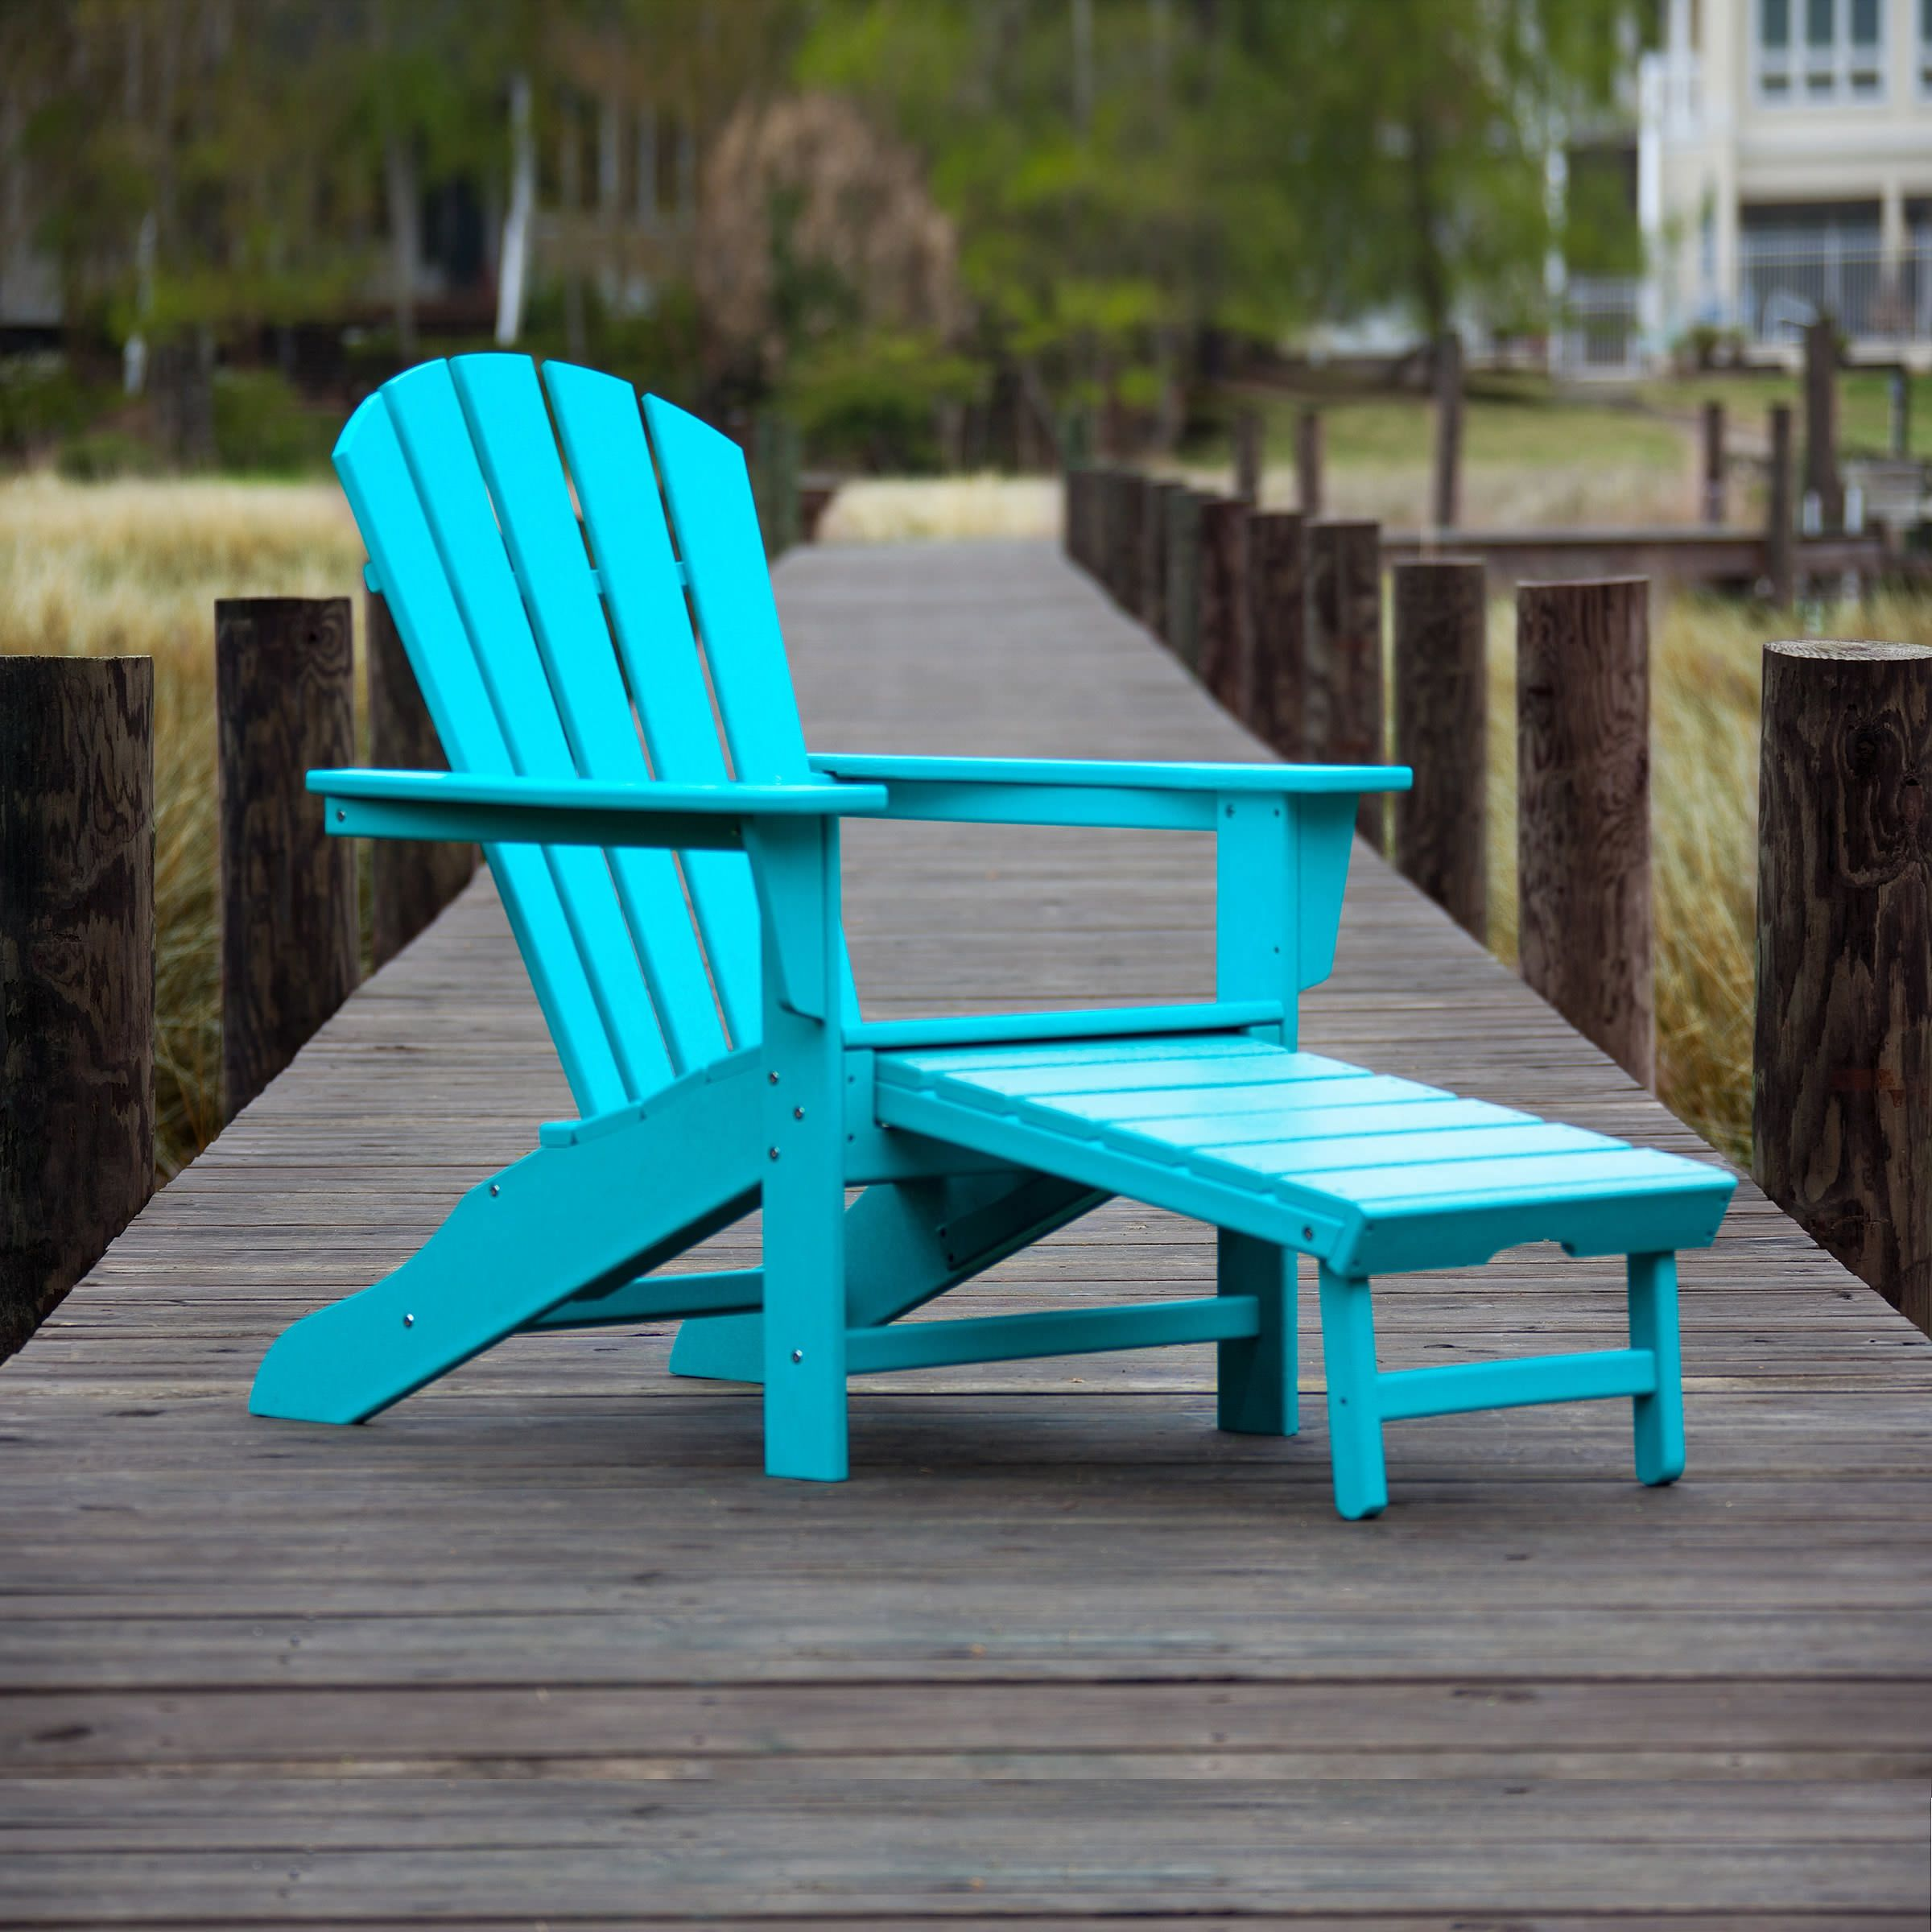 Our+POLYWOOD+South+Beach+Ultimate+Adirondack+chair+has+an